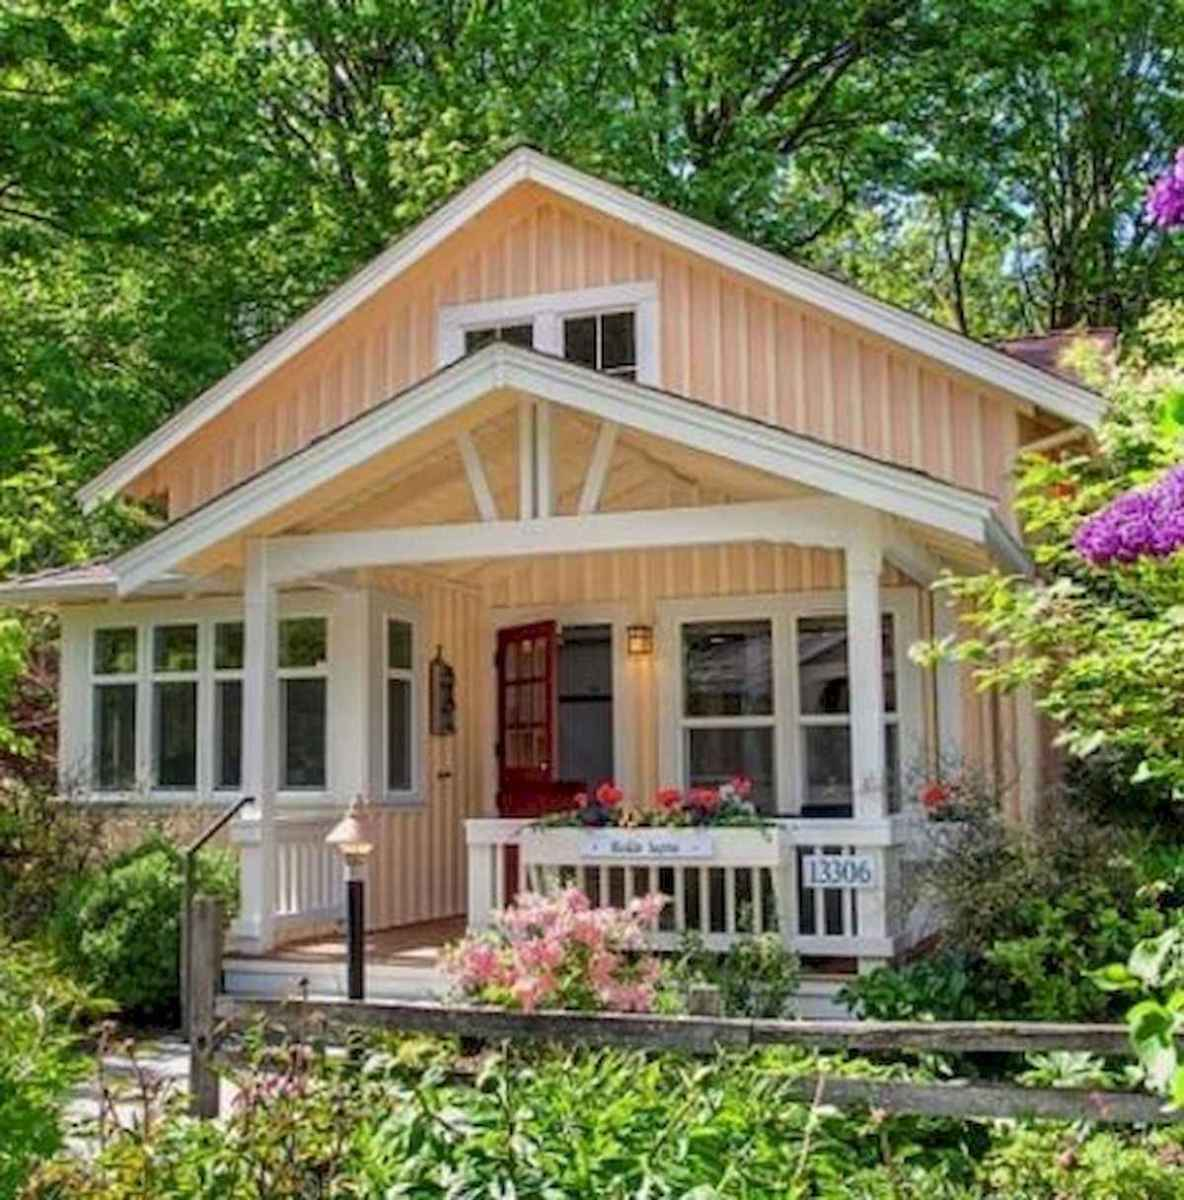 60 Beautiful Tiny House Plans Small Cottages Design Ideas (22)